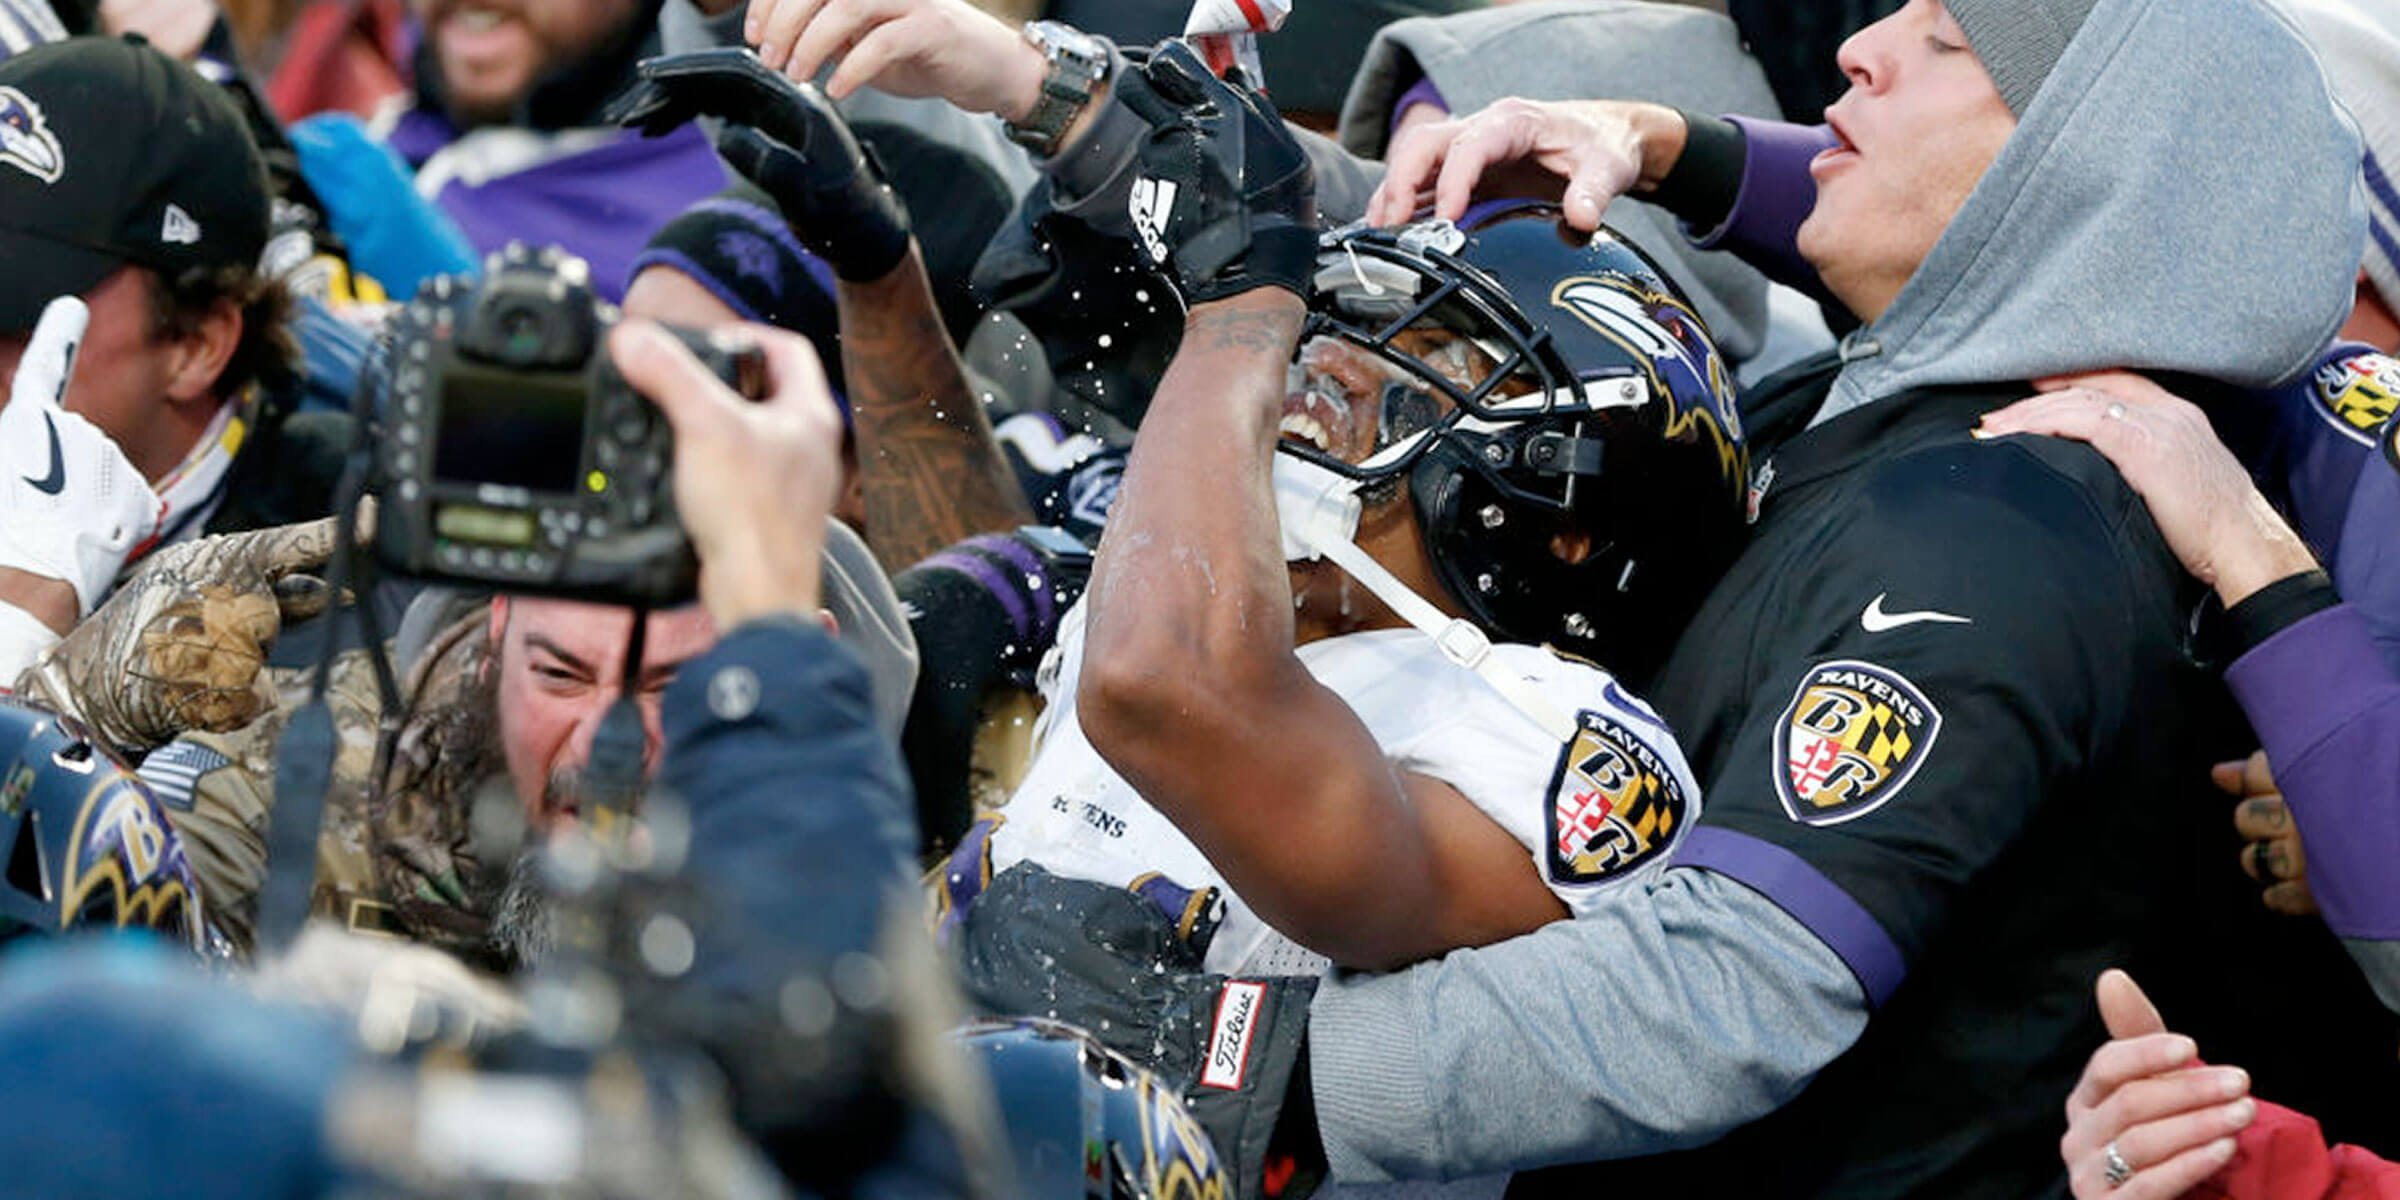 Baltimore Ravens CB Marcus Peters celebrated a game-clinching play by chugging a fan's beer, was fined, and Bud Light matched the tab with a charitable donation.